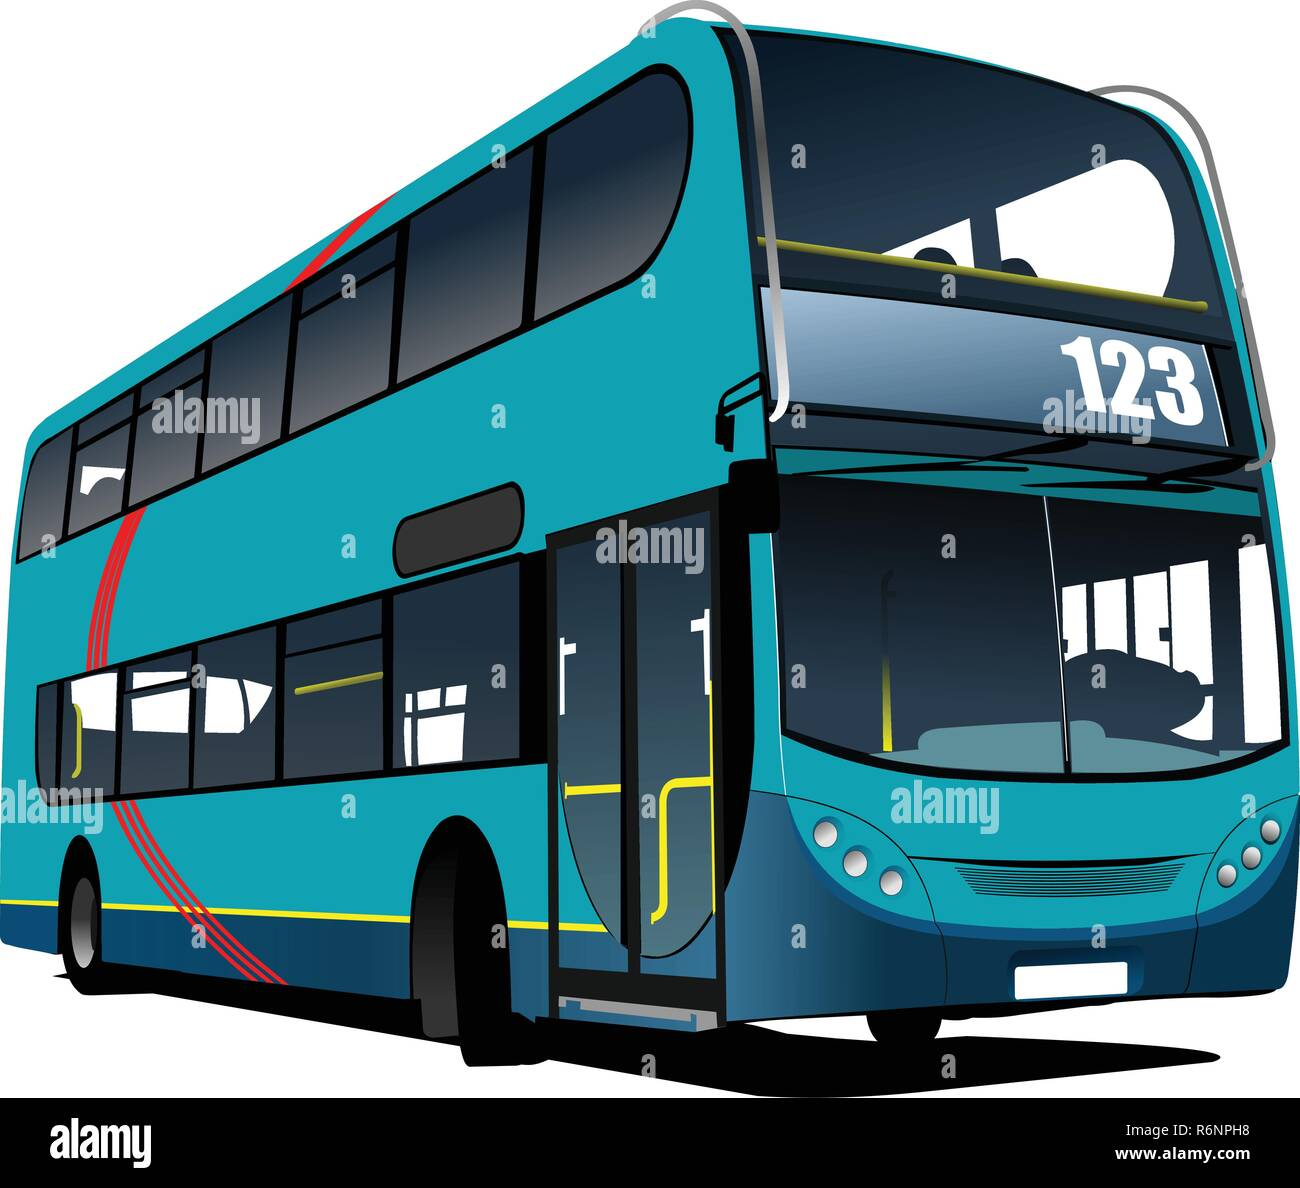 Blue tourist bus. Coach. Vector illustration - Stock Vector